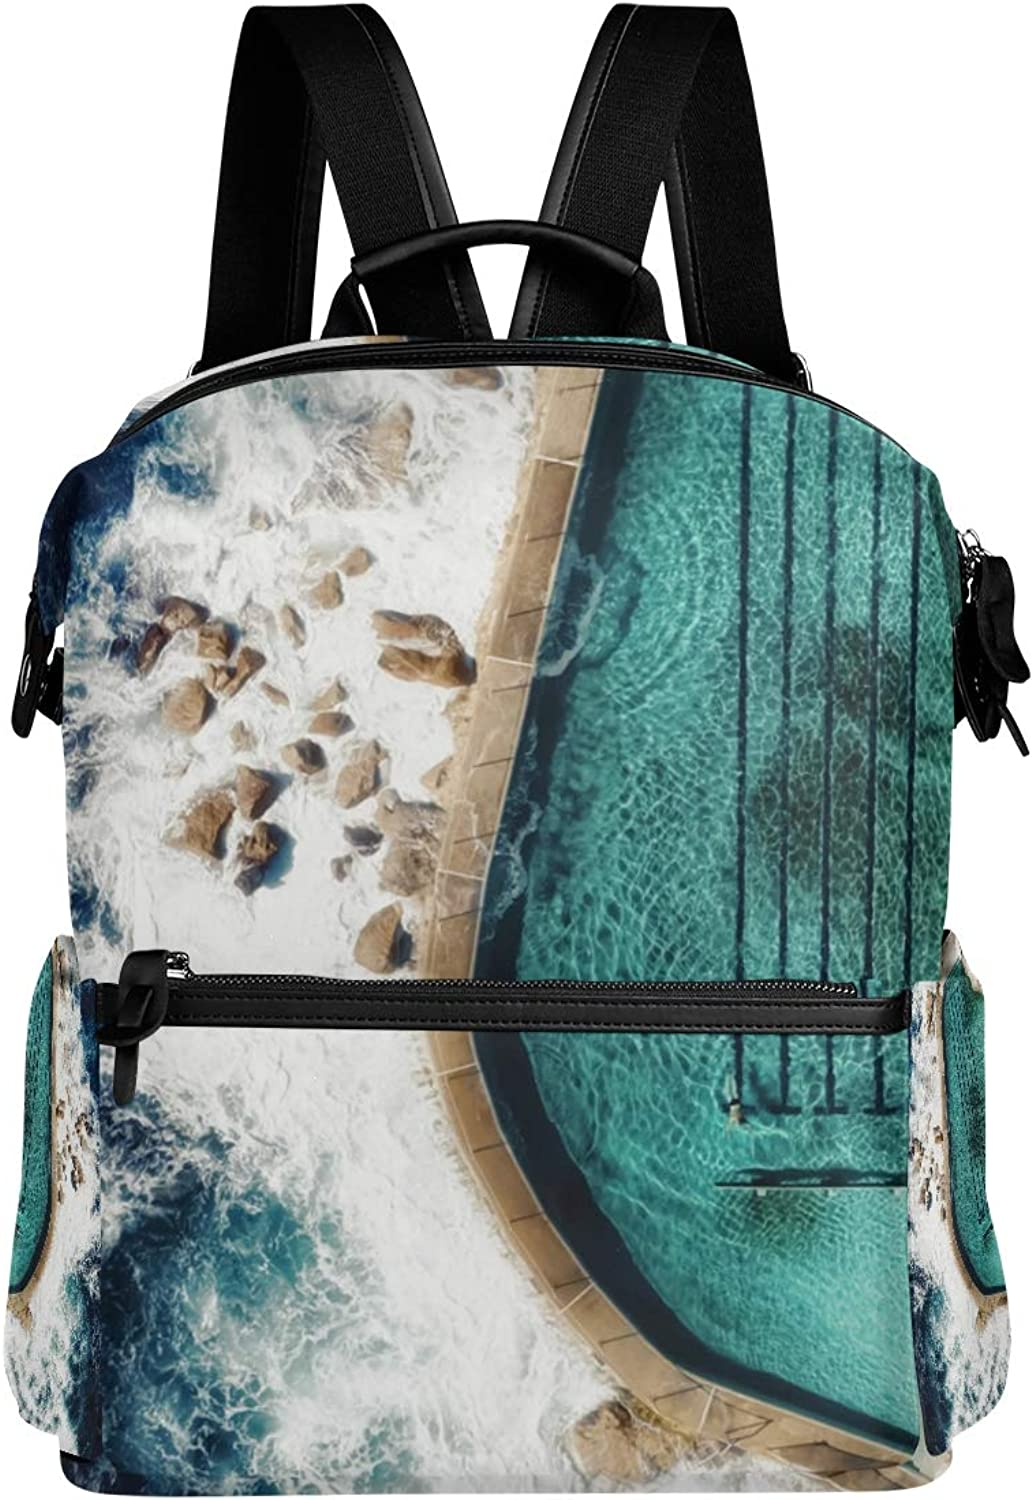 MONTOJ Amazing Ocean Pool Leather Travel Bag Campus Backpack